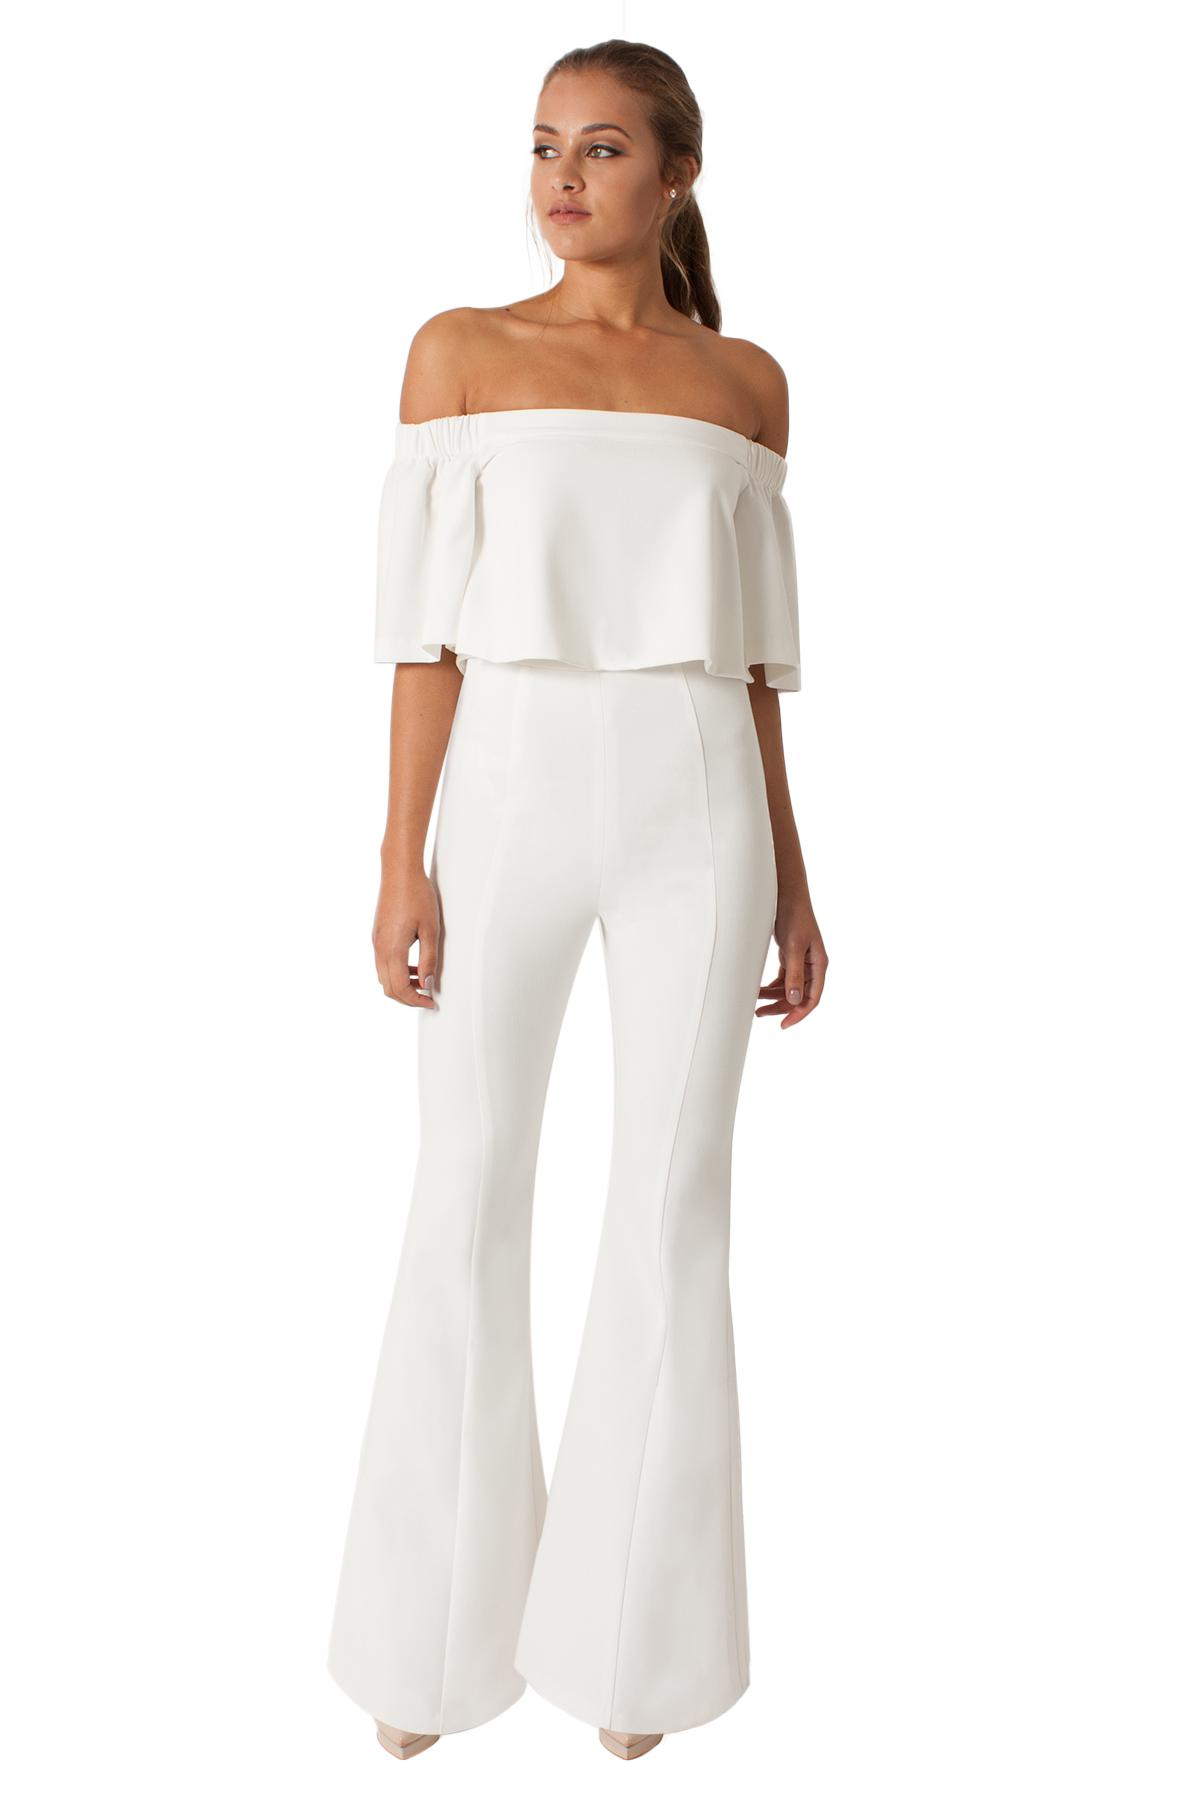 044d8e07632 Lyst - Black Halo Hadid Two Piece Jumpsuit in White